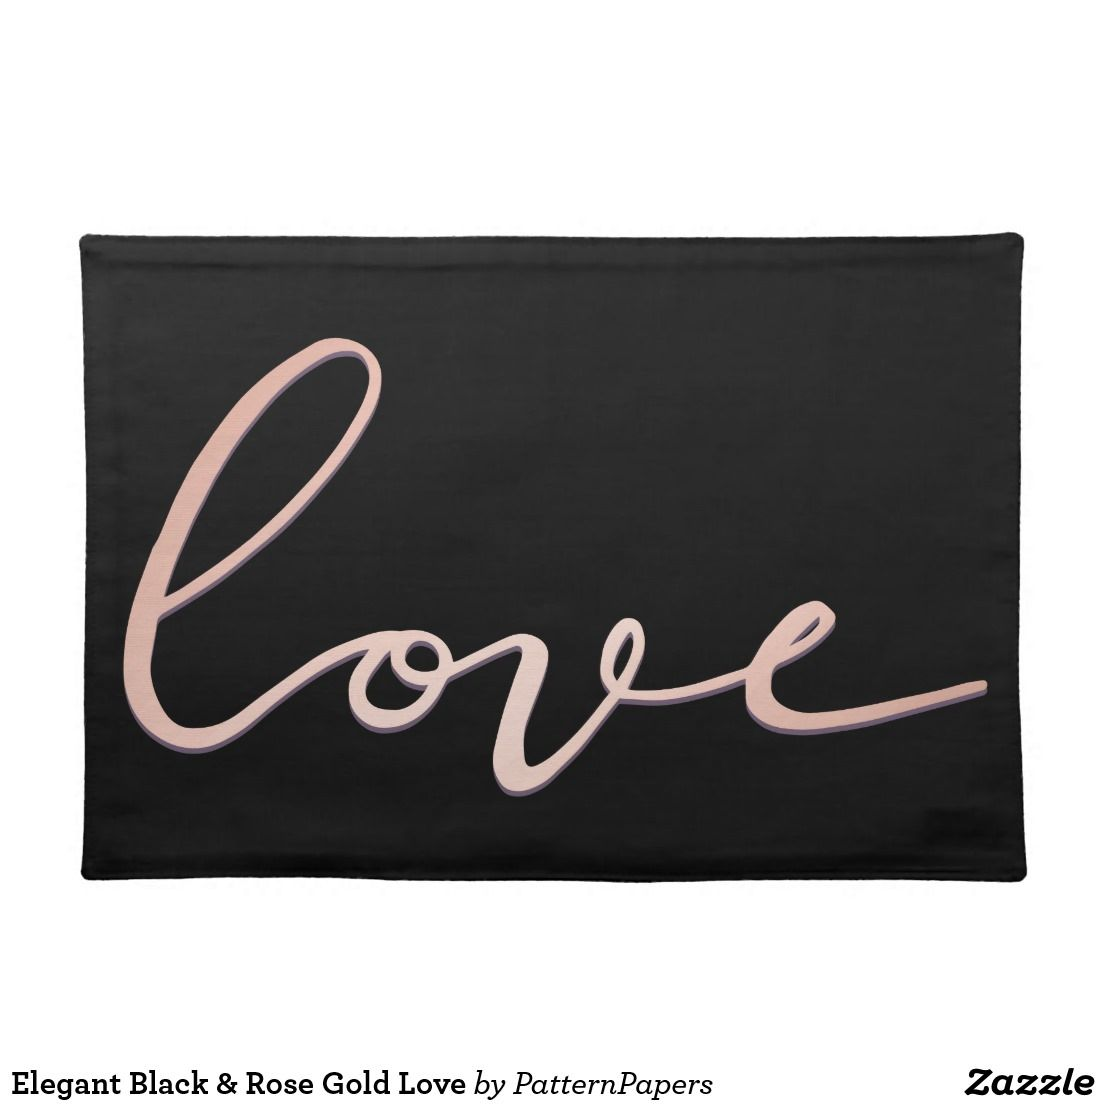 Elegant Black & Rose Gold Love Cloth Placemat is part of Trendy Clothes Rose Gold - Elegant Black & Rose Gold Love